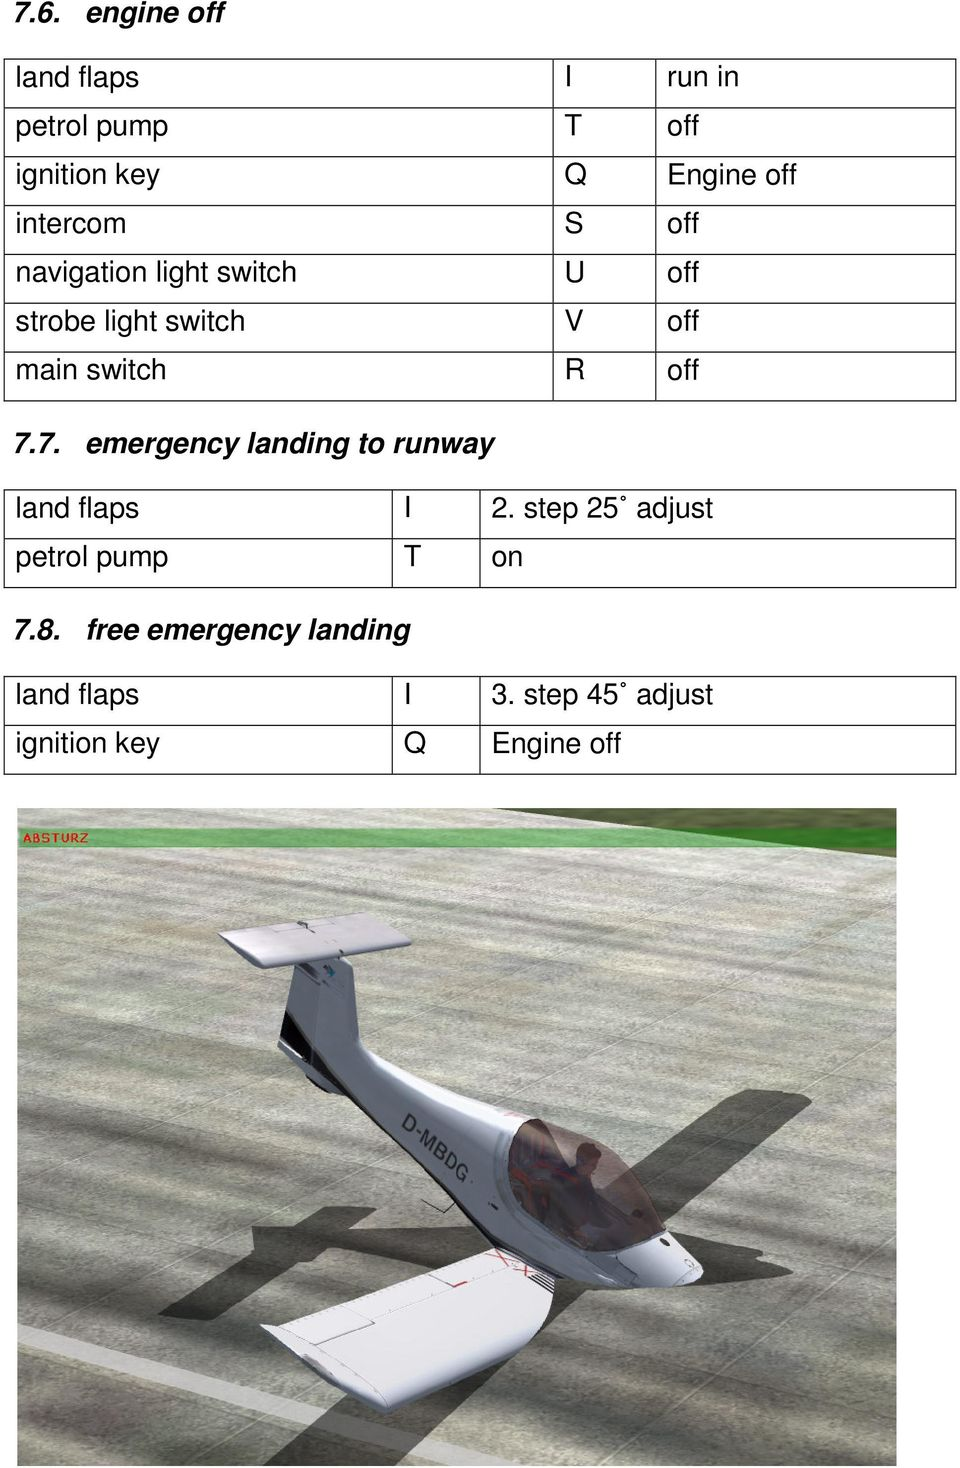 R off 7.7. emergency landing to runway land flaps I 2.